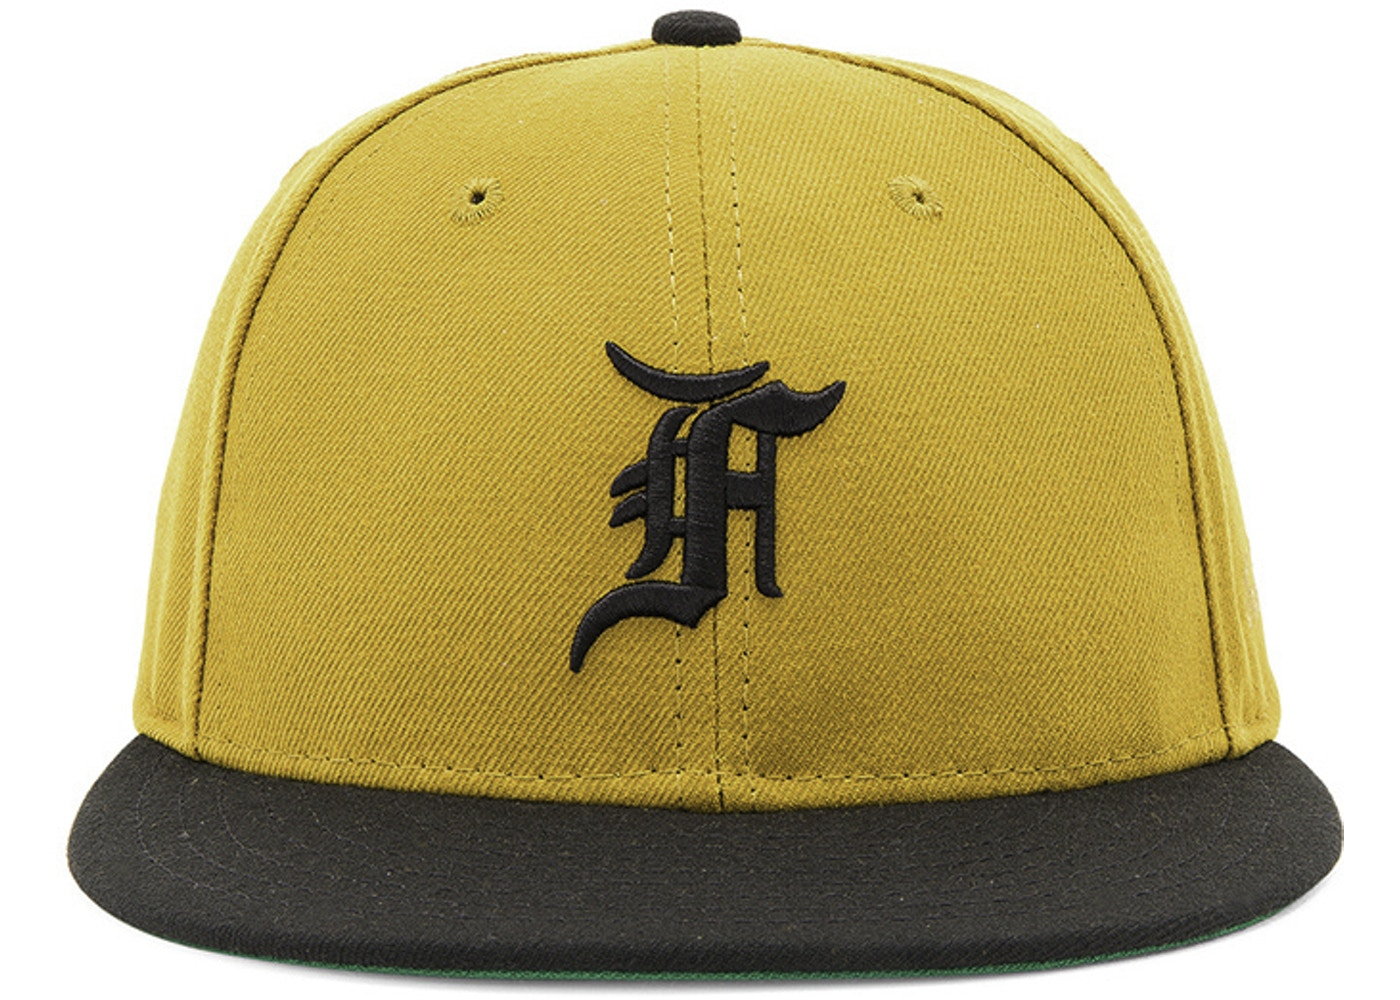 FEAR OF GOD New Era Fitted Cap Hat Vintage Gold - Fifth Collection 457544e6928